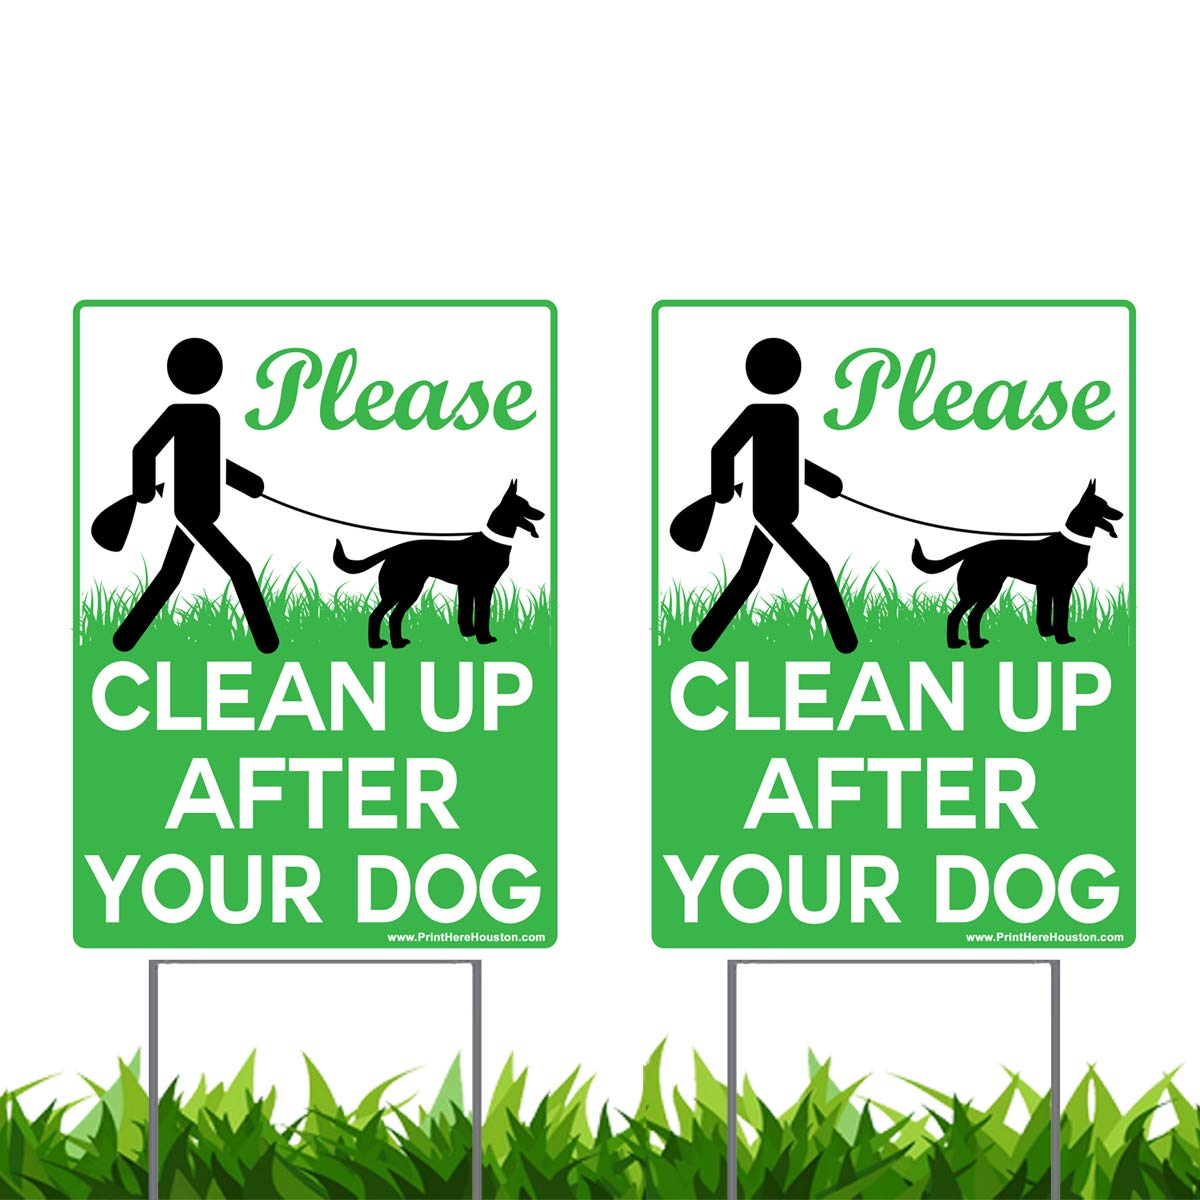 Vibe Ink 2 Pack of 9 x 12'' Please Clean Up After Your Dog - No Pooping Dog Lawn Signs with 2X Metal Wire H-Stakes Stands Included by Vibe Ink